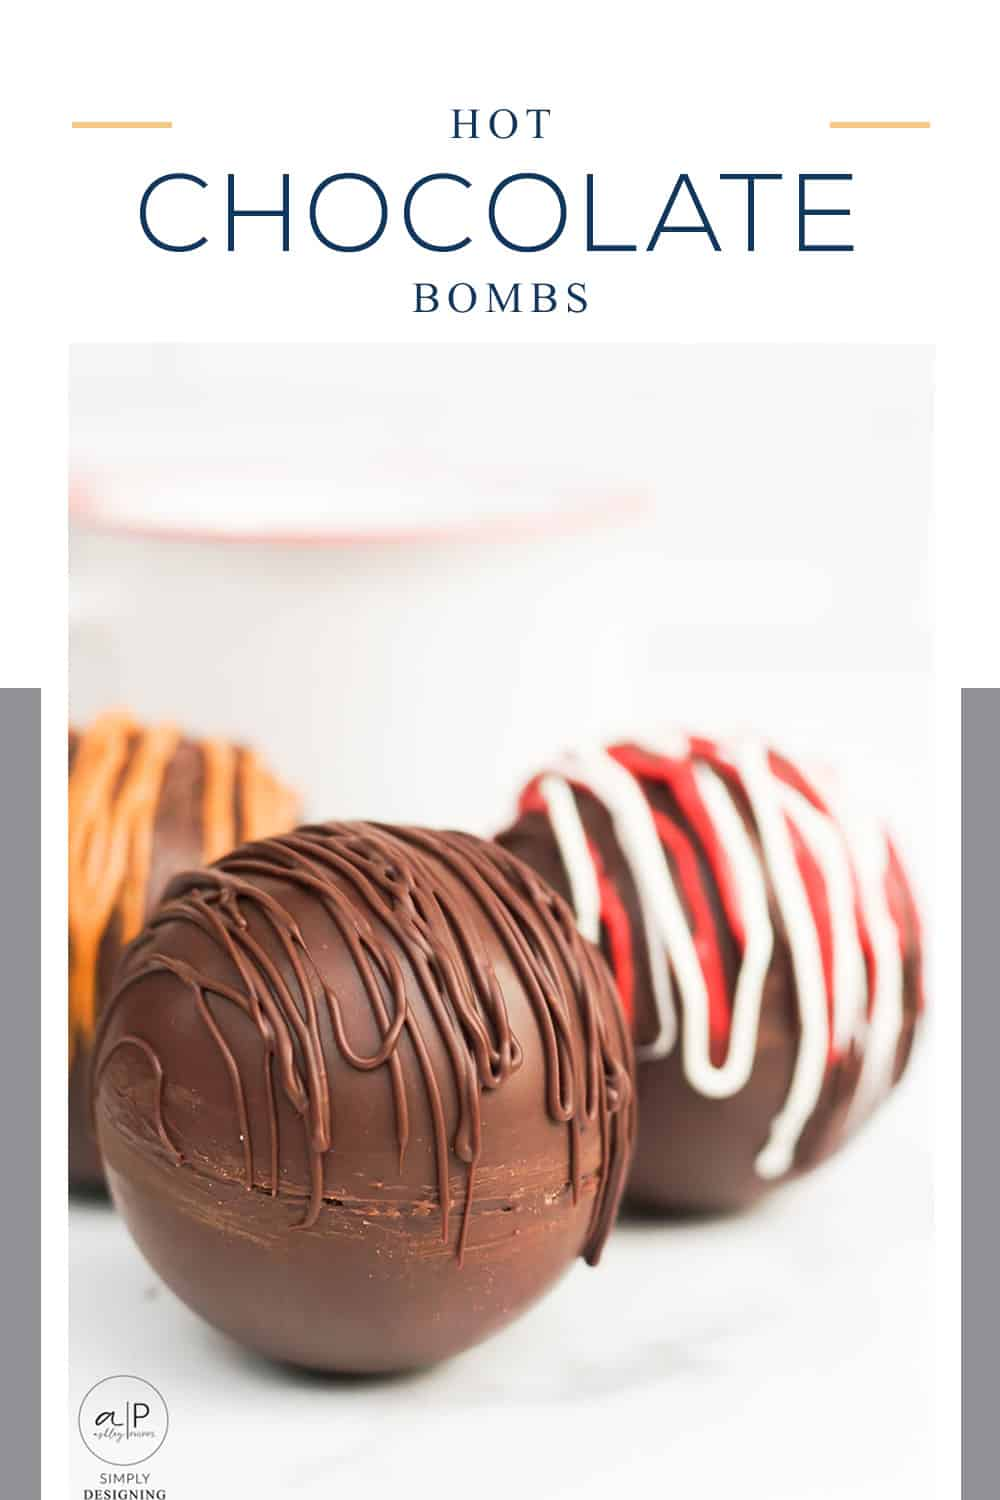 This Hot Chocolate Bomb is a delicious chocolate ball that explodes with marshmellows when put into hot milk for the most tasty hot chocolate ever